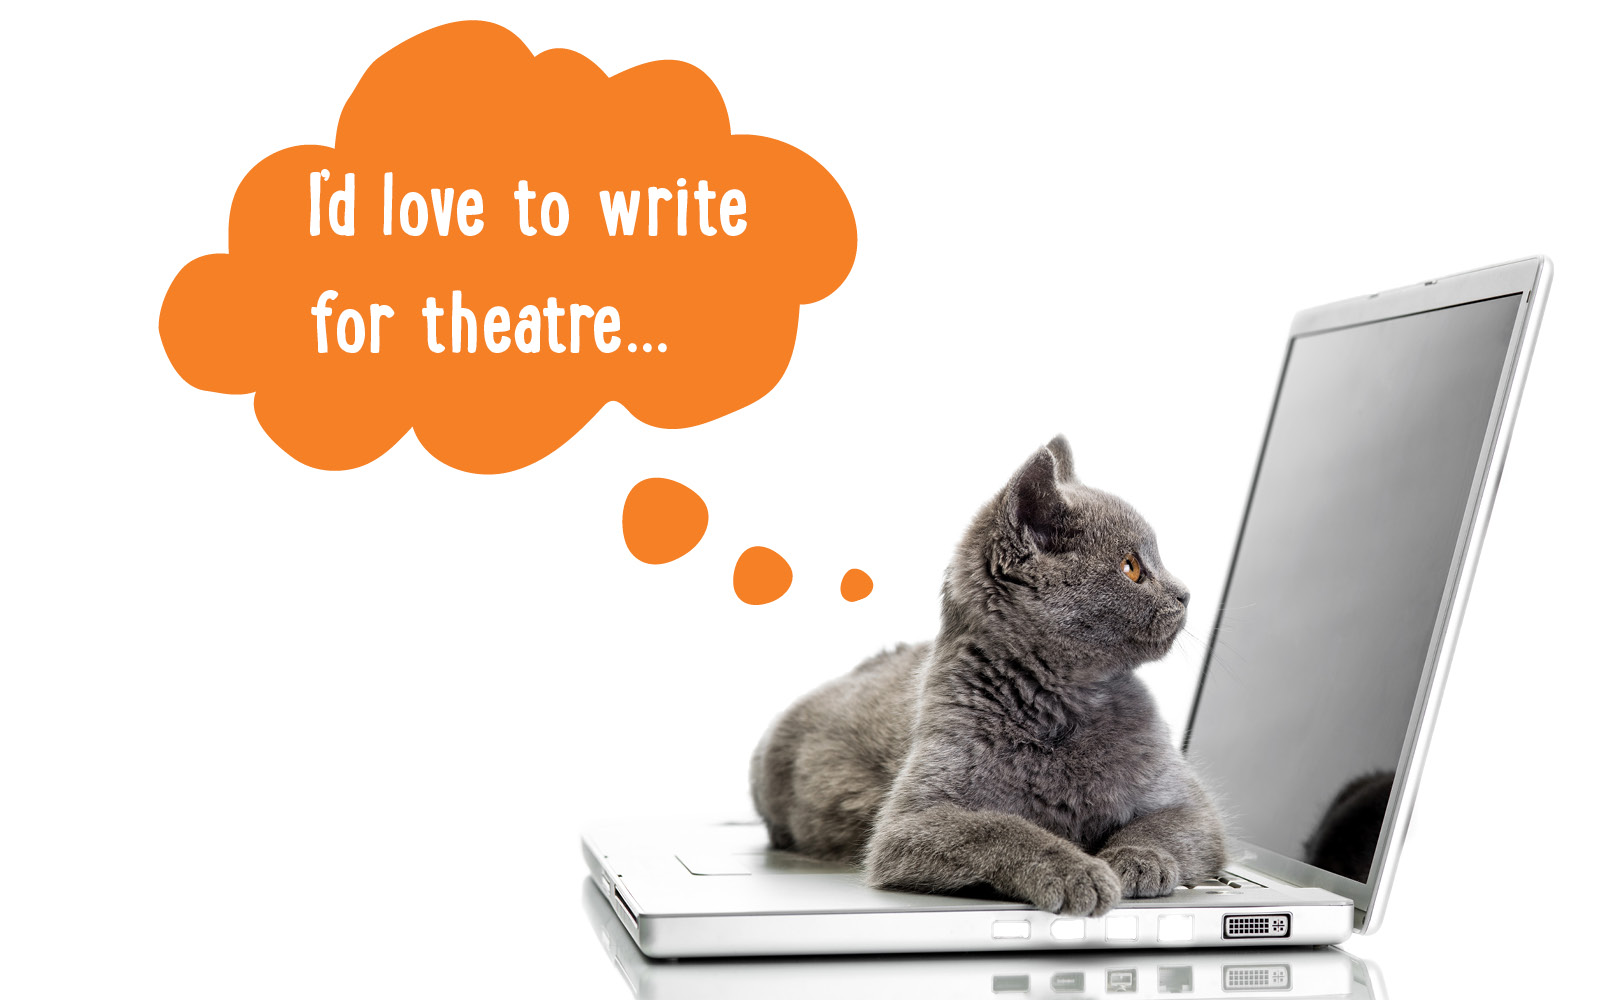 Image of kitten sitting on laptop looking at screen and thinking I'd love to write for theatre